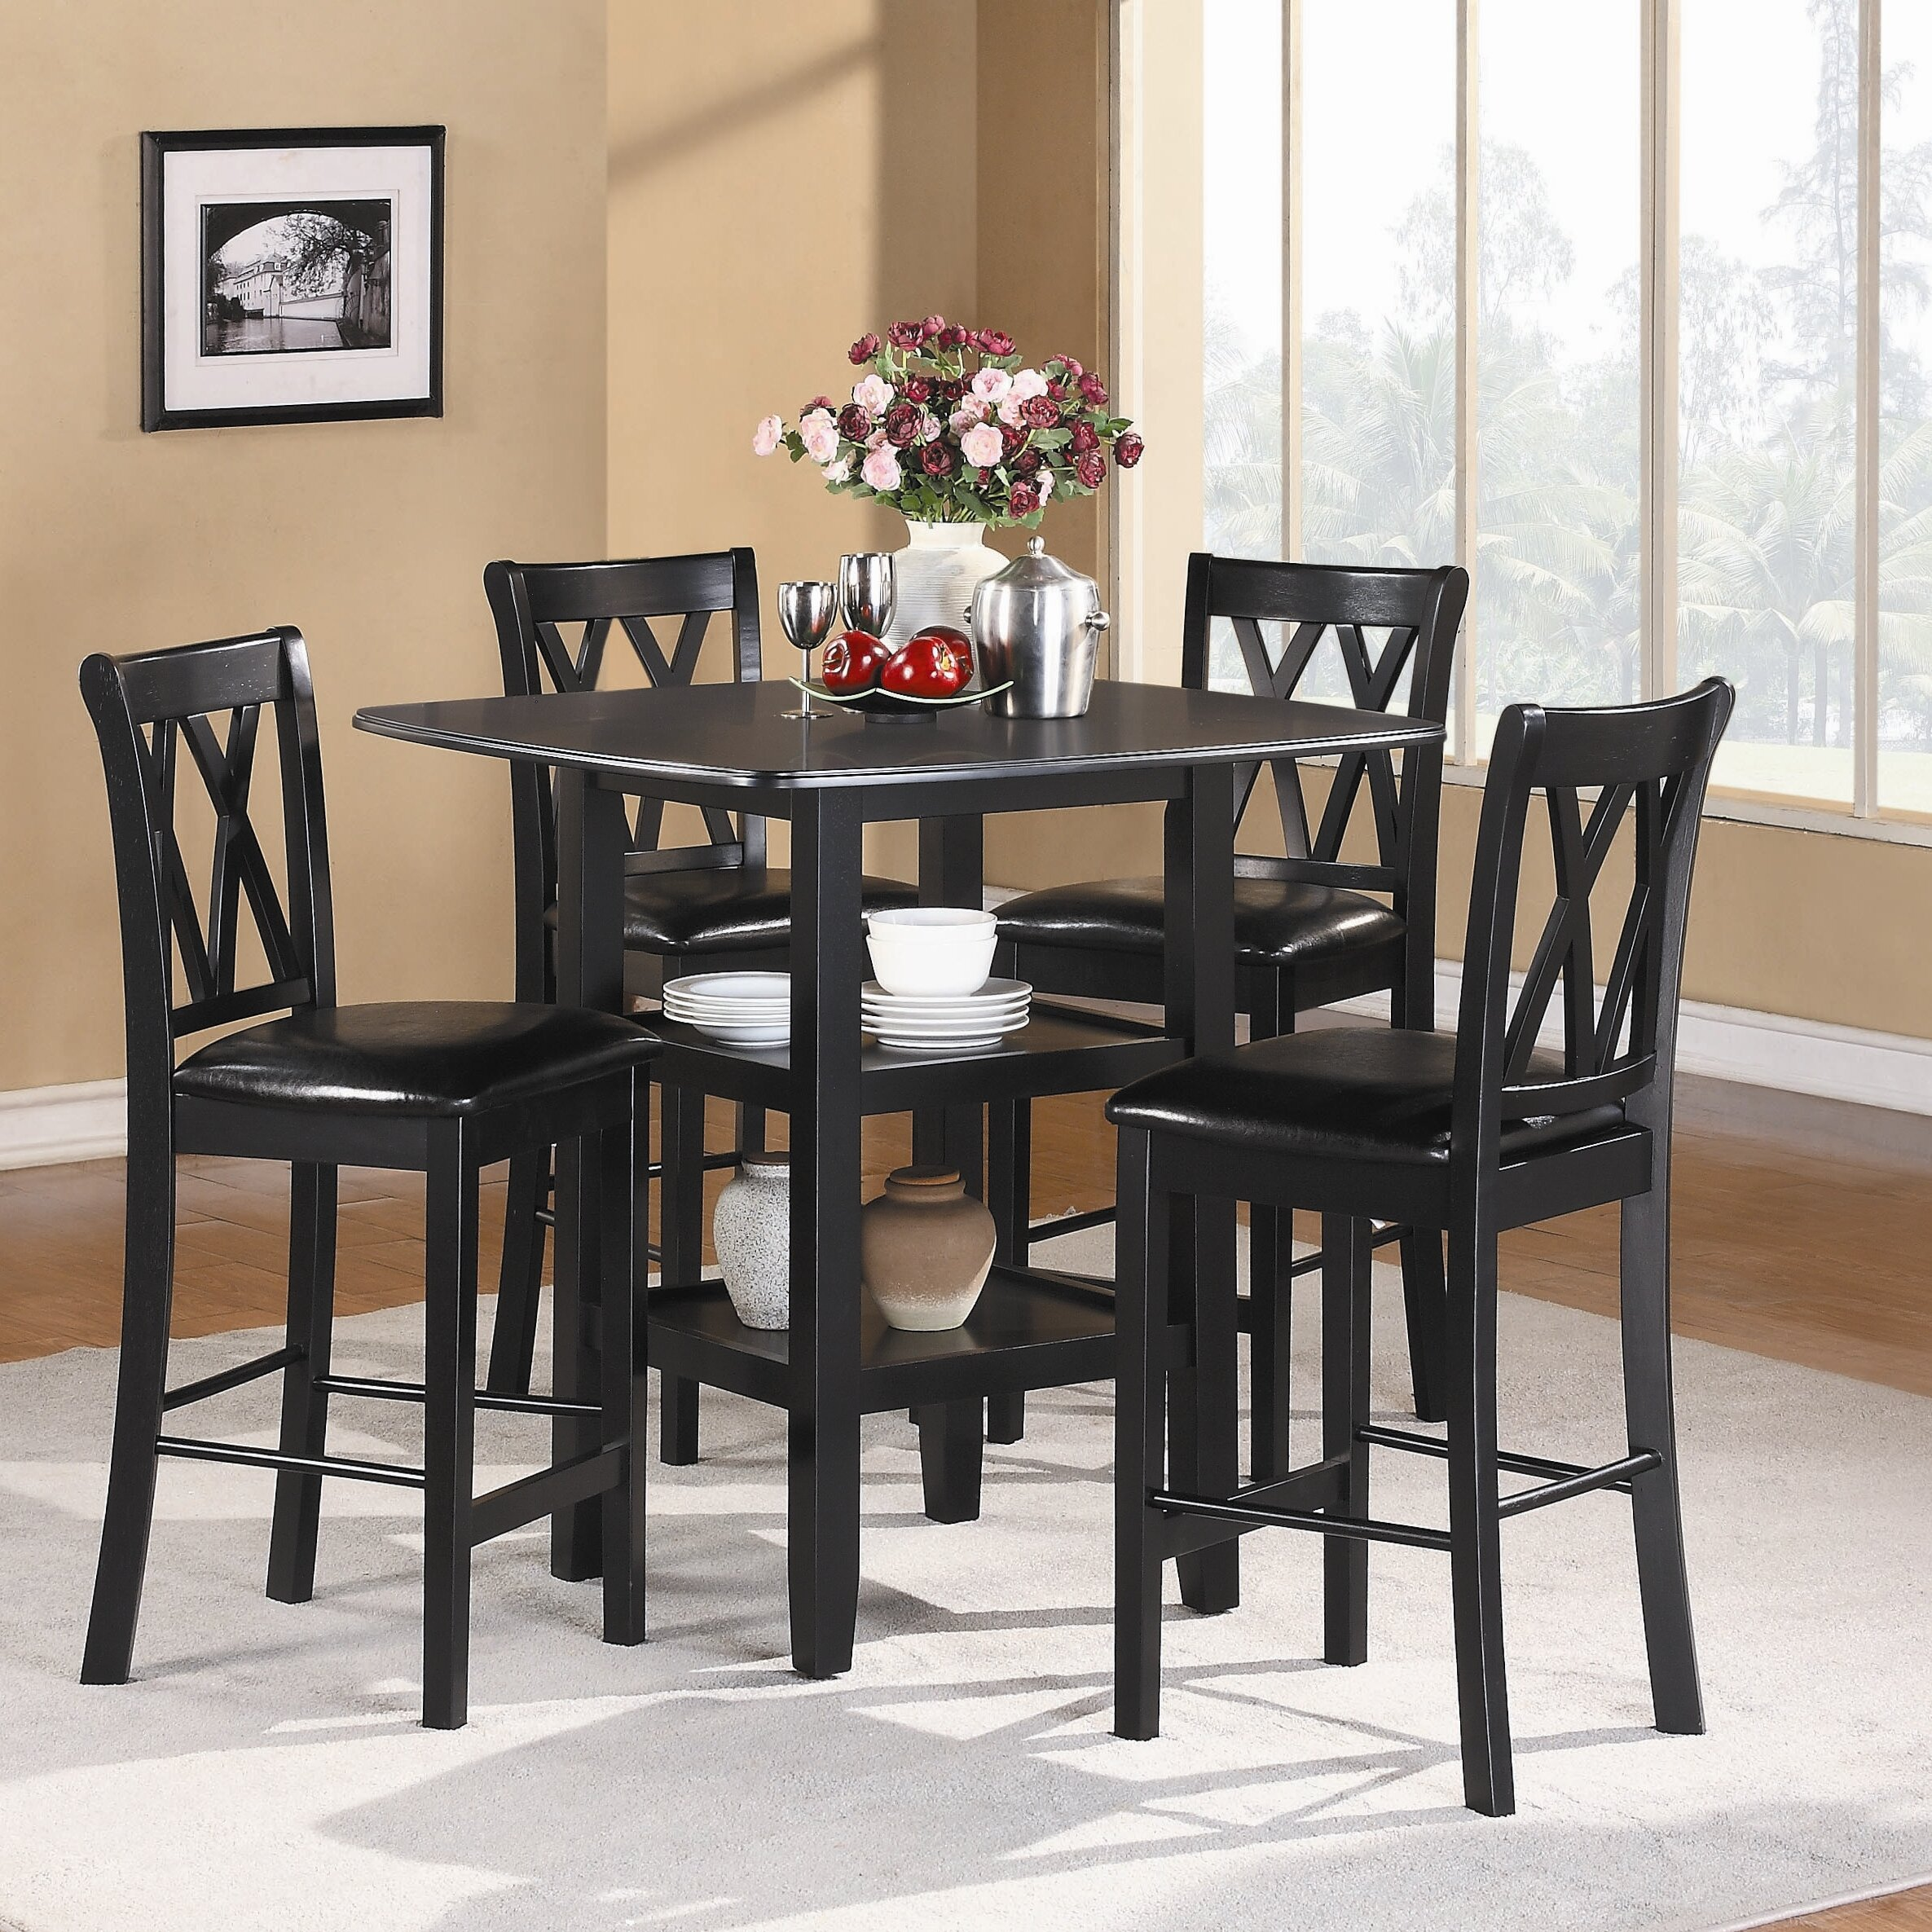 Woodhaven hill norman 5 piece counter height dining set for 5 piece dining set